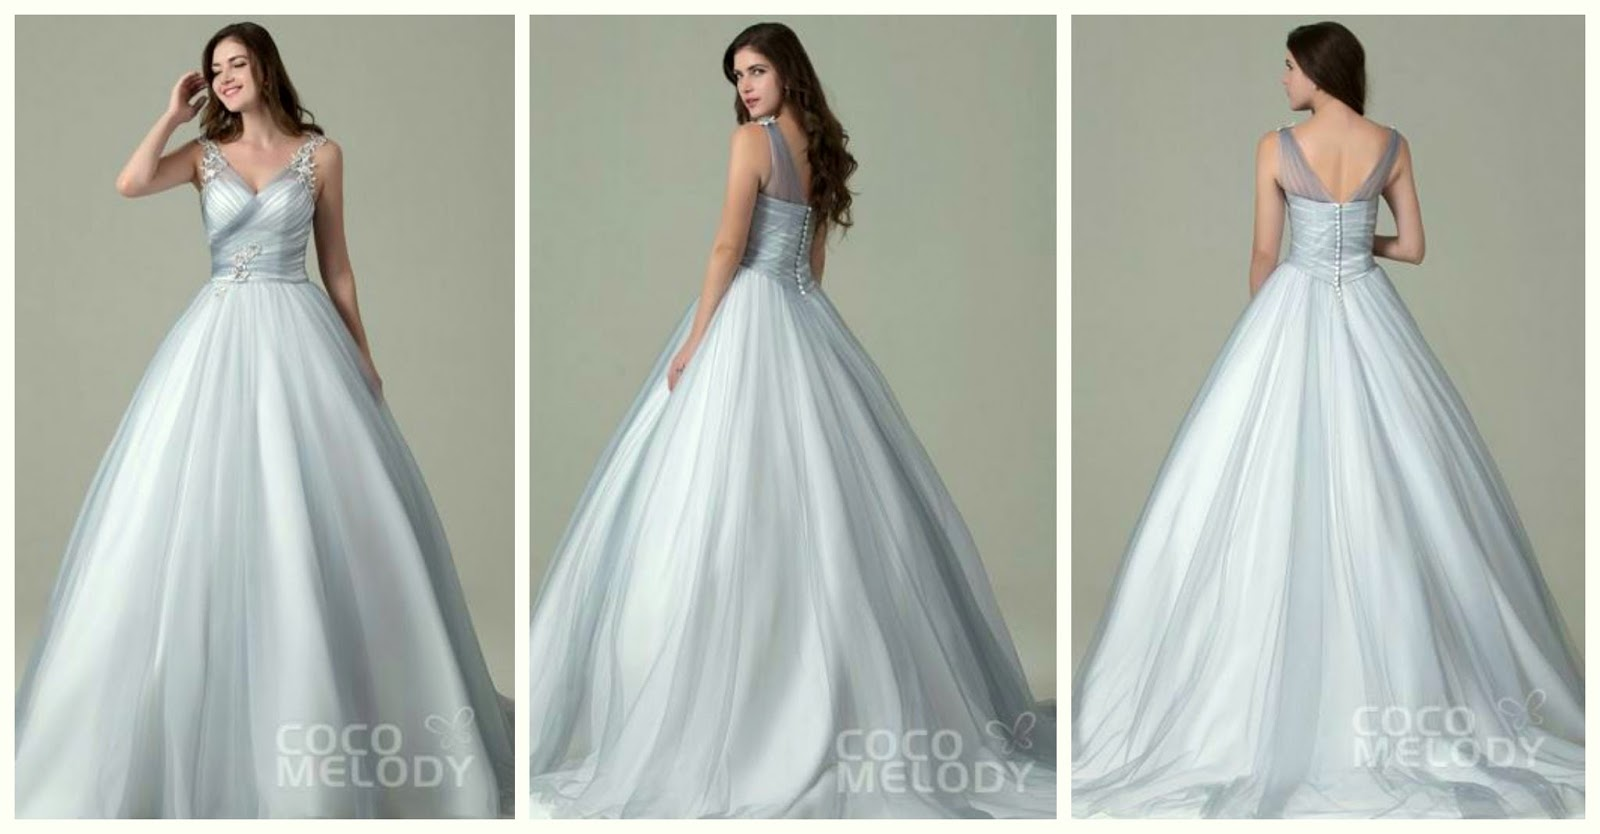 Beautiful Wedding Dresses That Will Take Your Breathe Away | Cocomelody.com